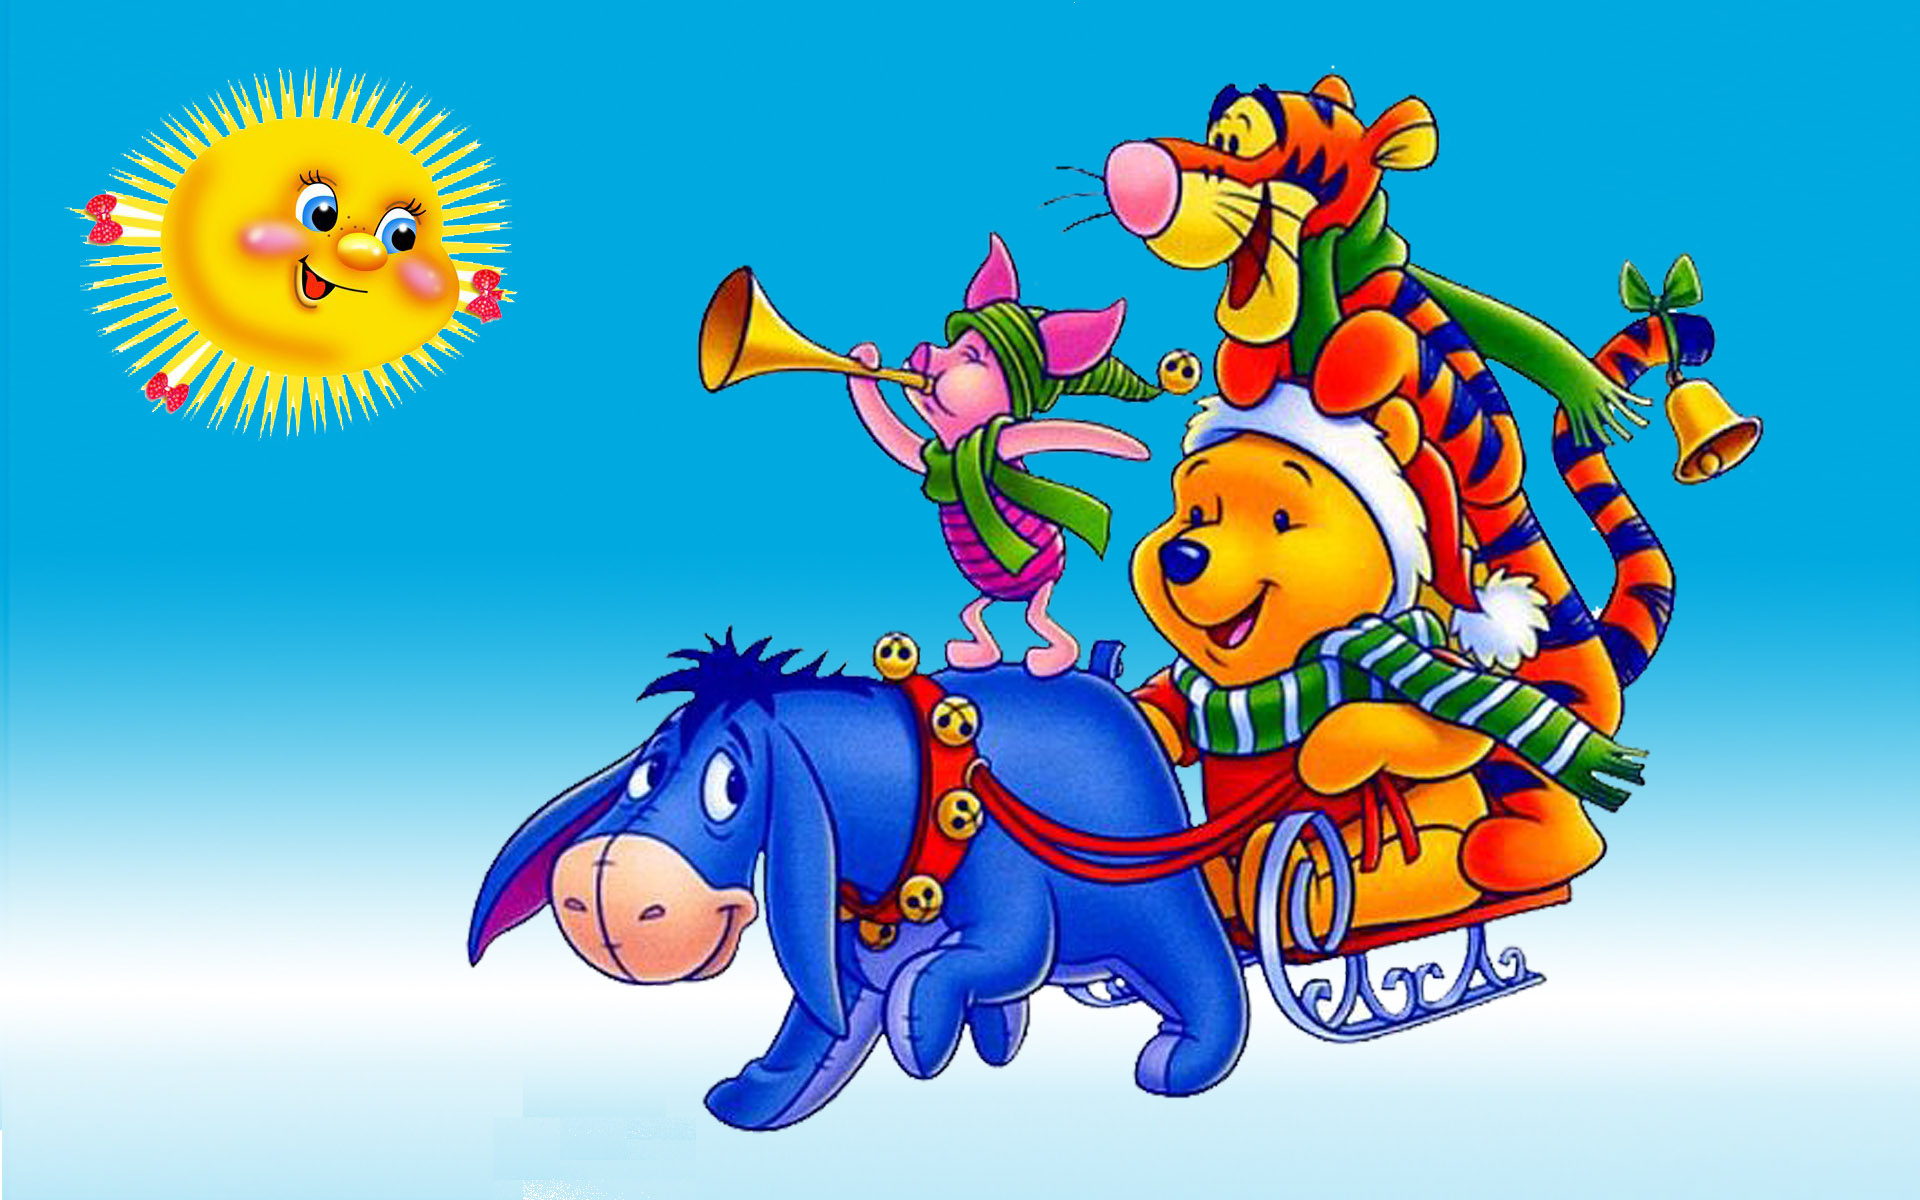 Xmas Wallpaper Iphone Winnie The Pooh And Friends Eeyore Tigger And Piglets